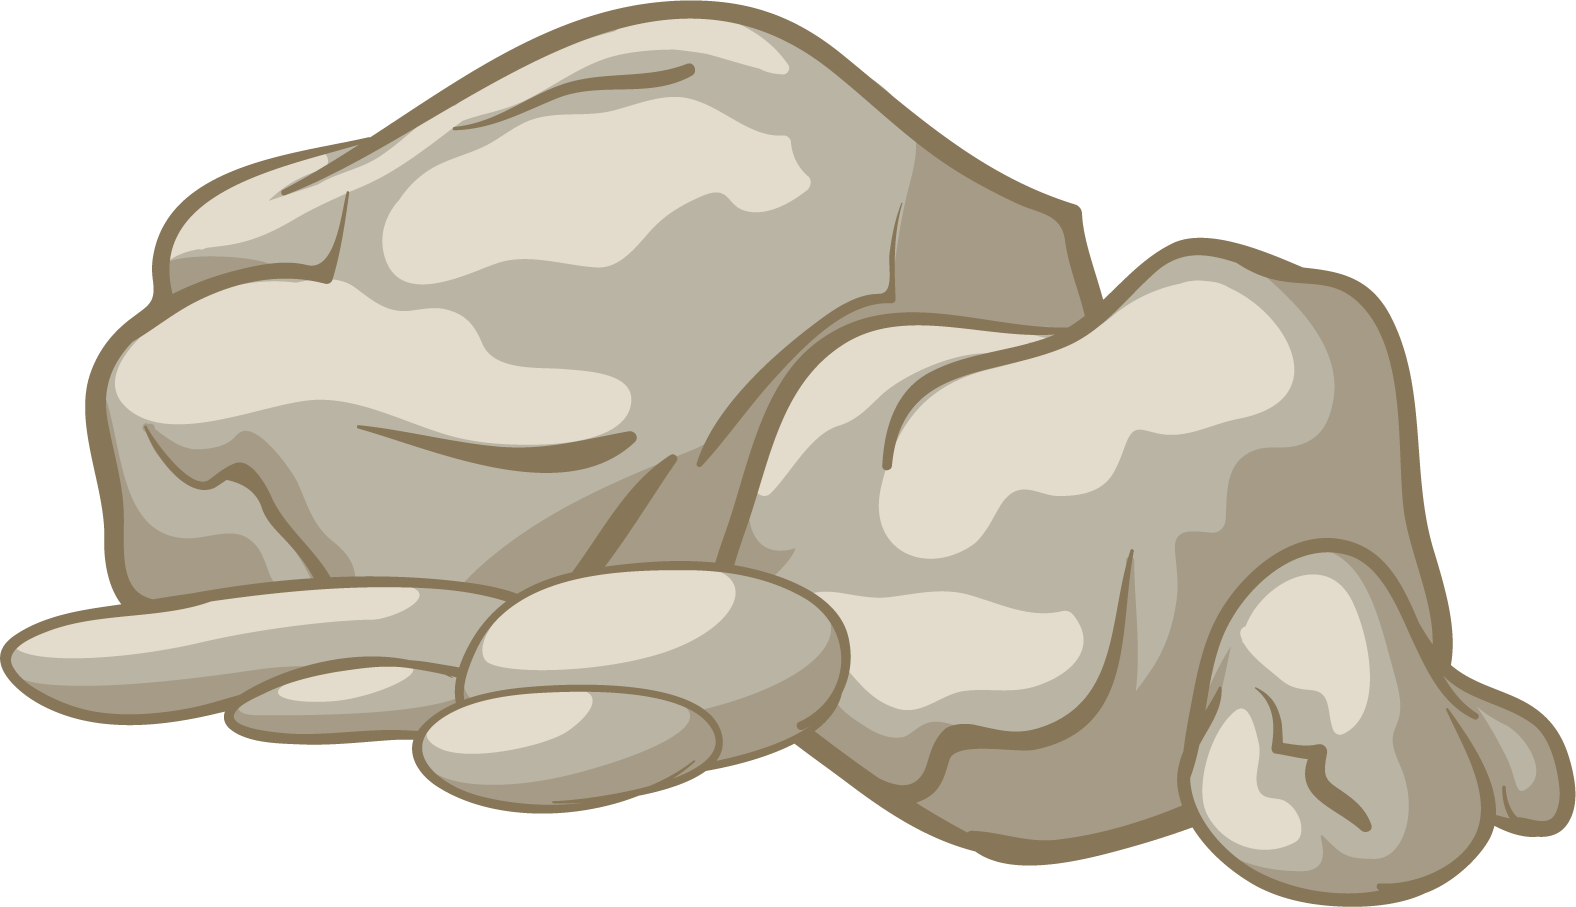 banner royalty free stock Boulder clipart broken rock. Png transparent free images.